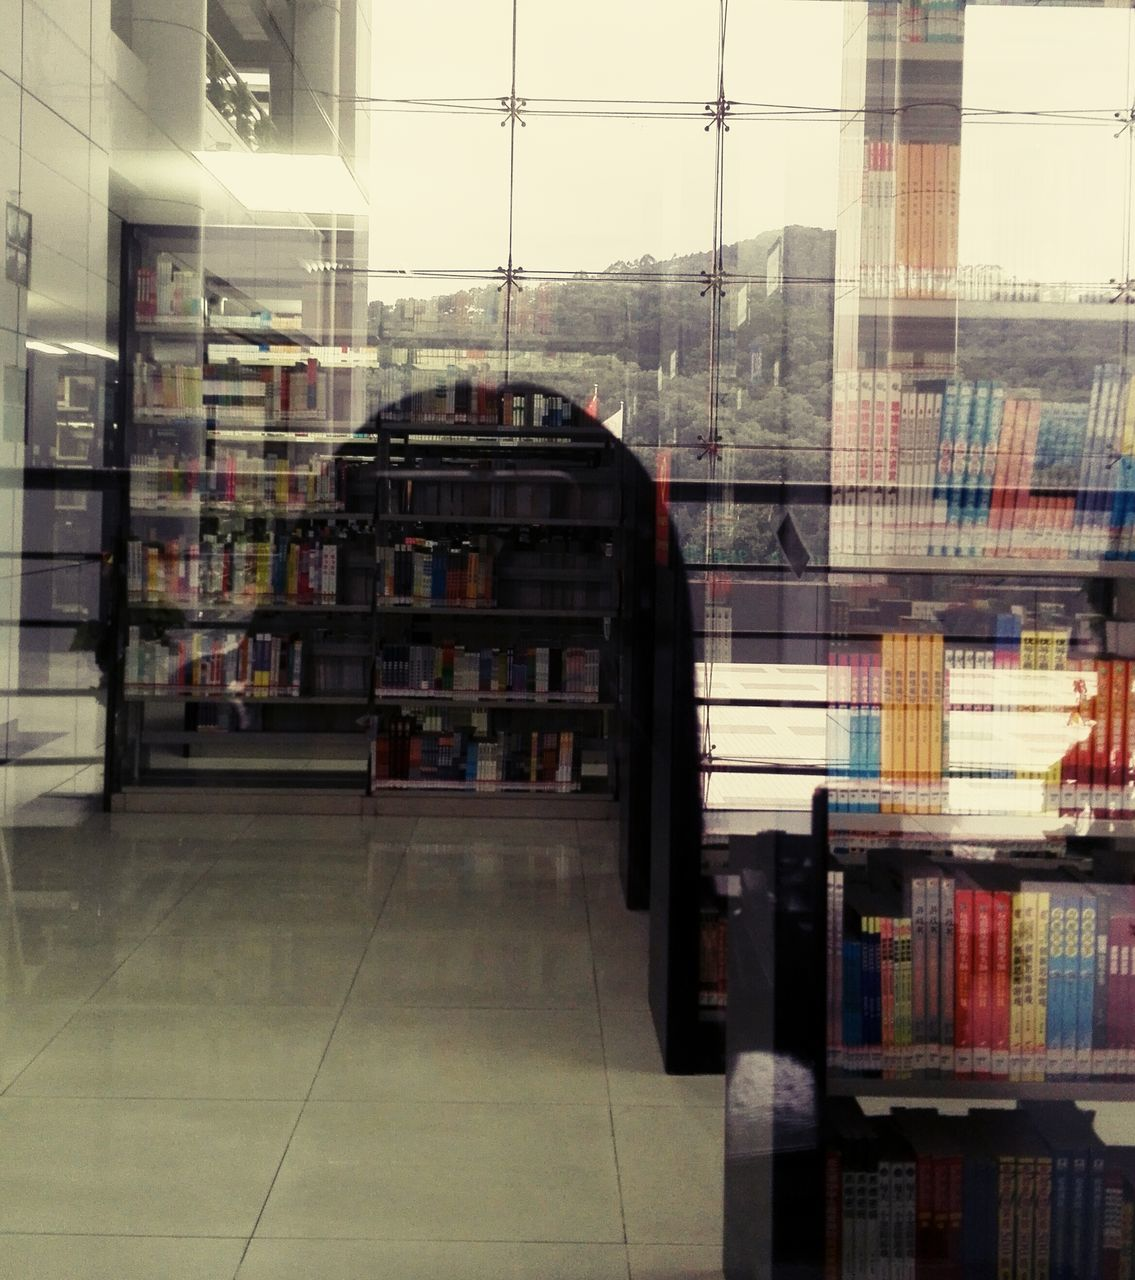 bookshelf, indoors, library, shelf, retail, store, architecture, choice, bookstore, book, reflection, built structure, no people, building exterior, day